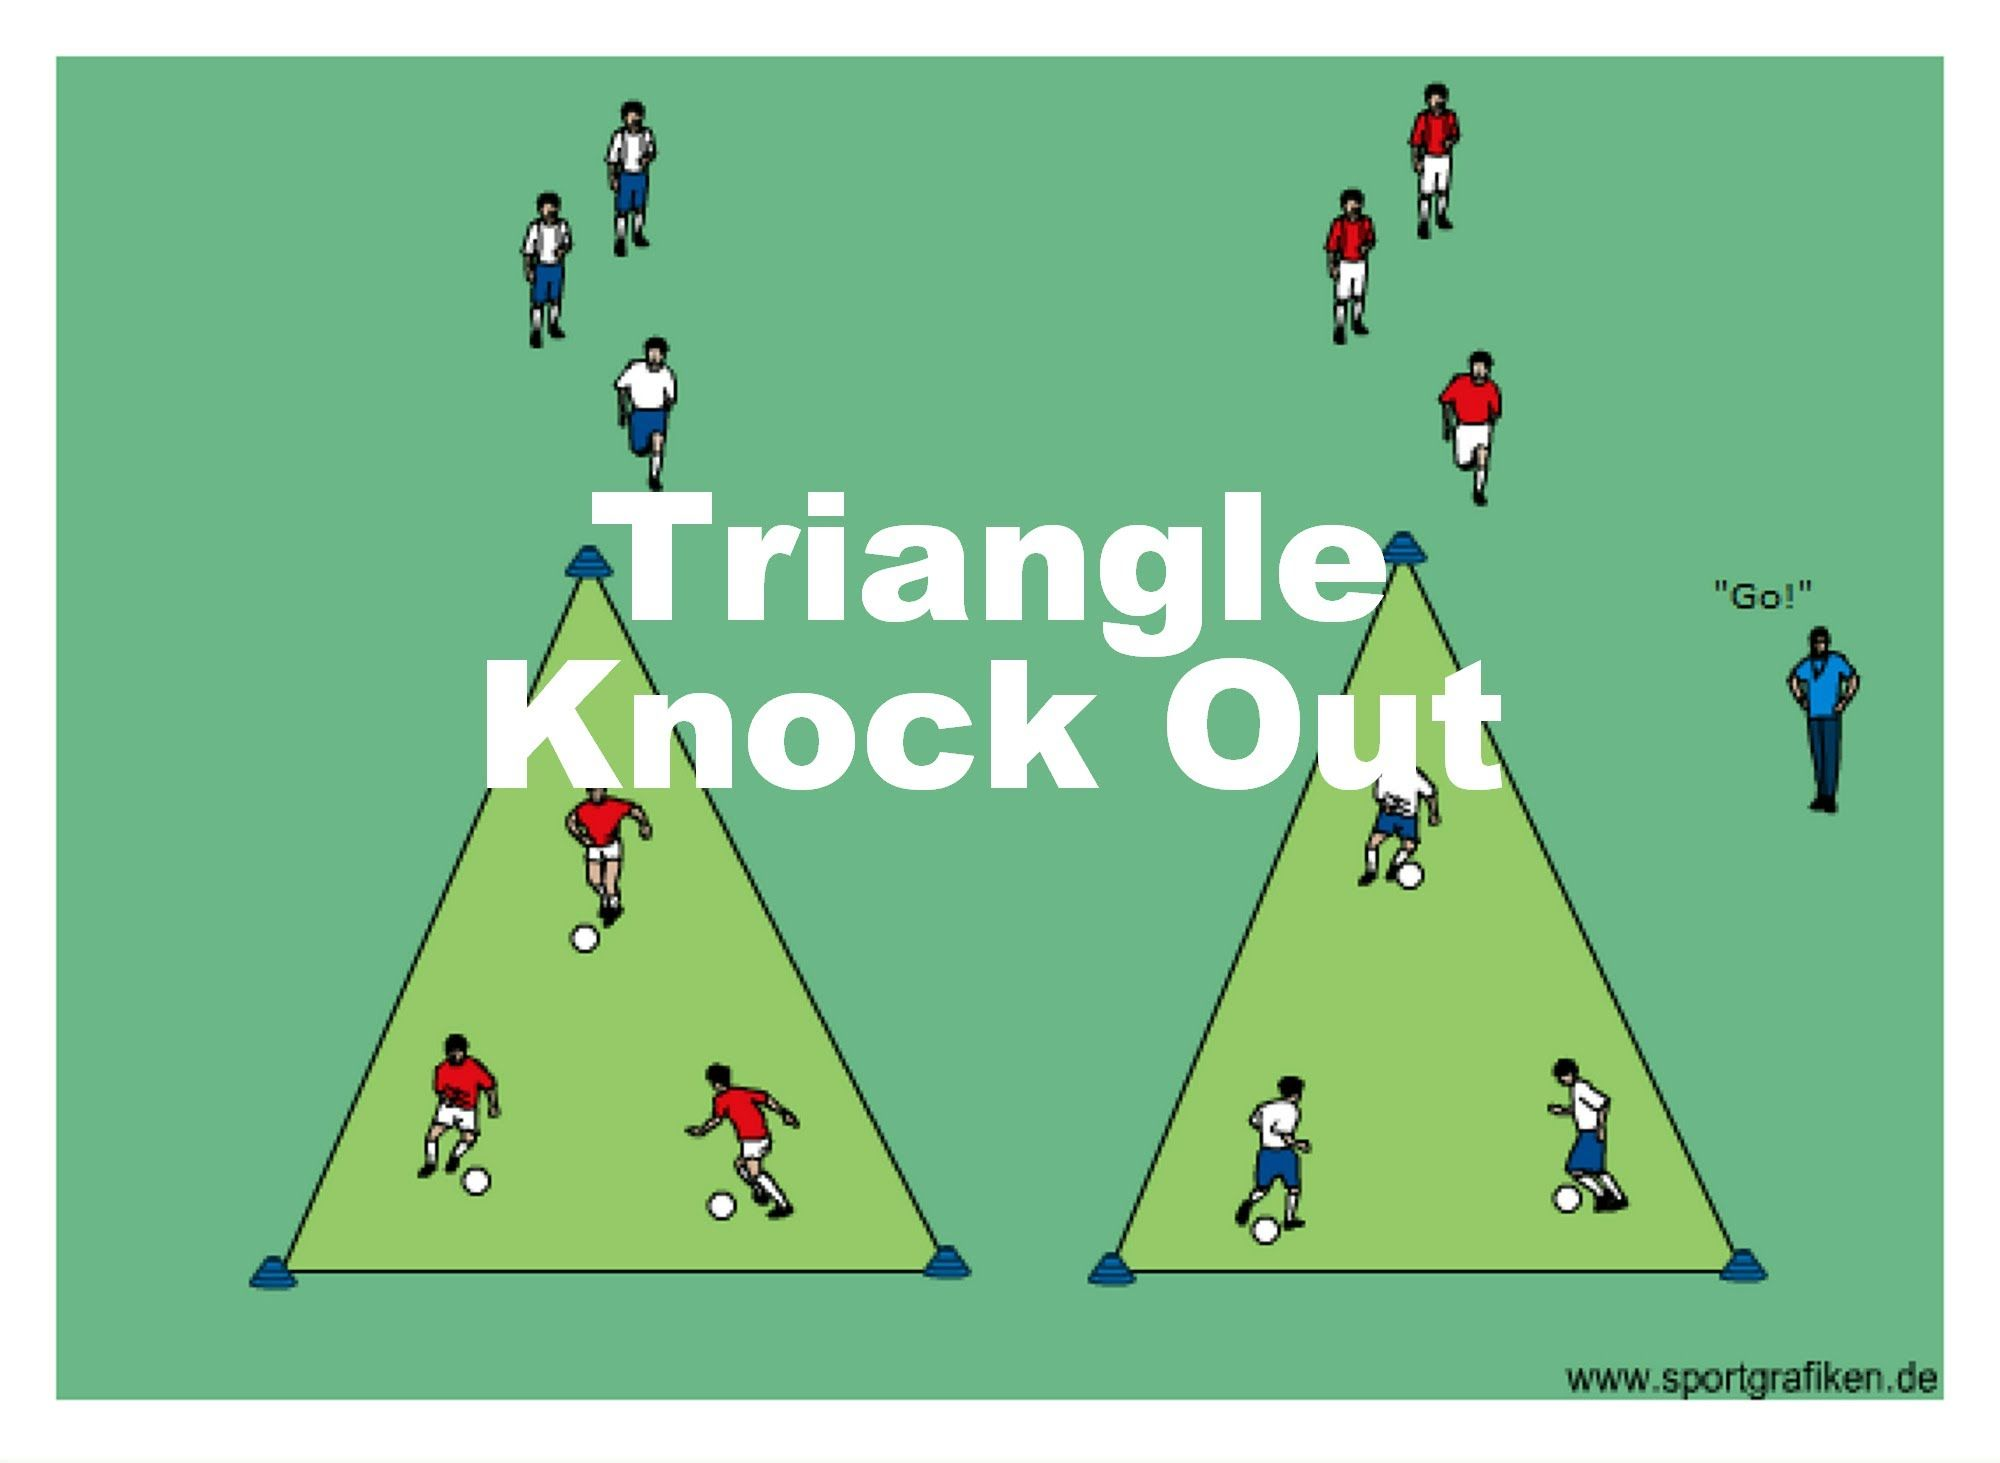 Triangle Knock Out Print Download This Drill Basic Information Age Group 5 7yrs 8 11yrs 12 15yrs 1 Soccer Drills For Kids Soccer Training Soccer Drills